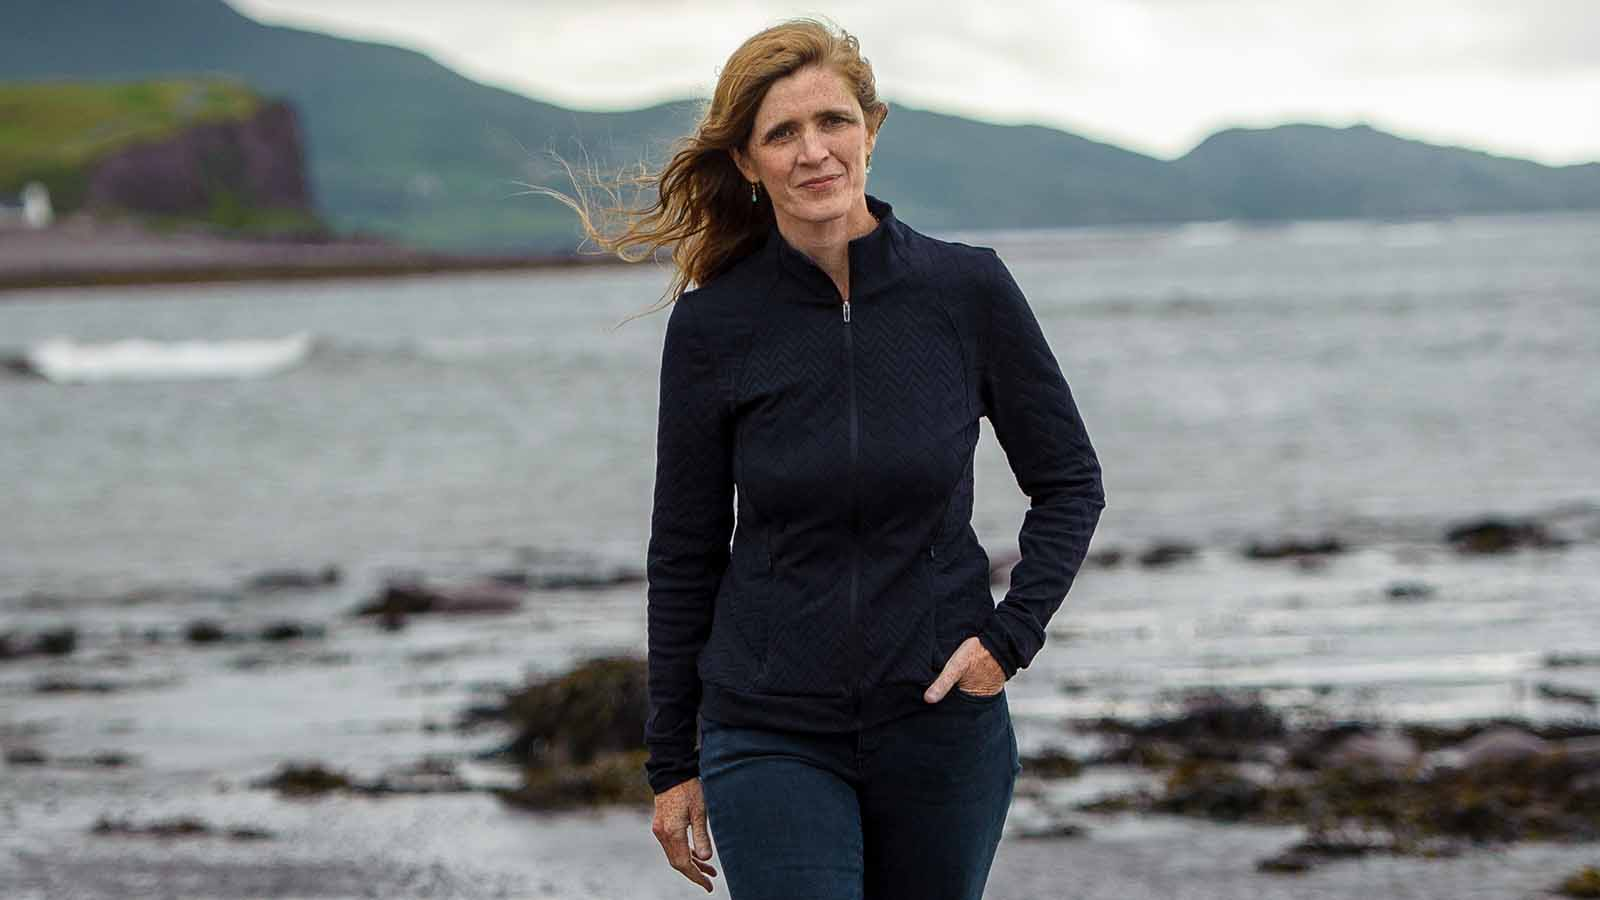 Amb. Samantha Power with an ocean and mountain landscape background.